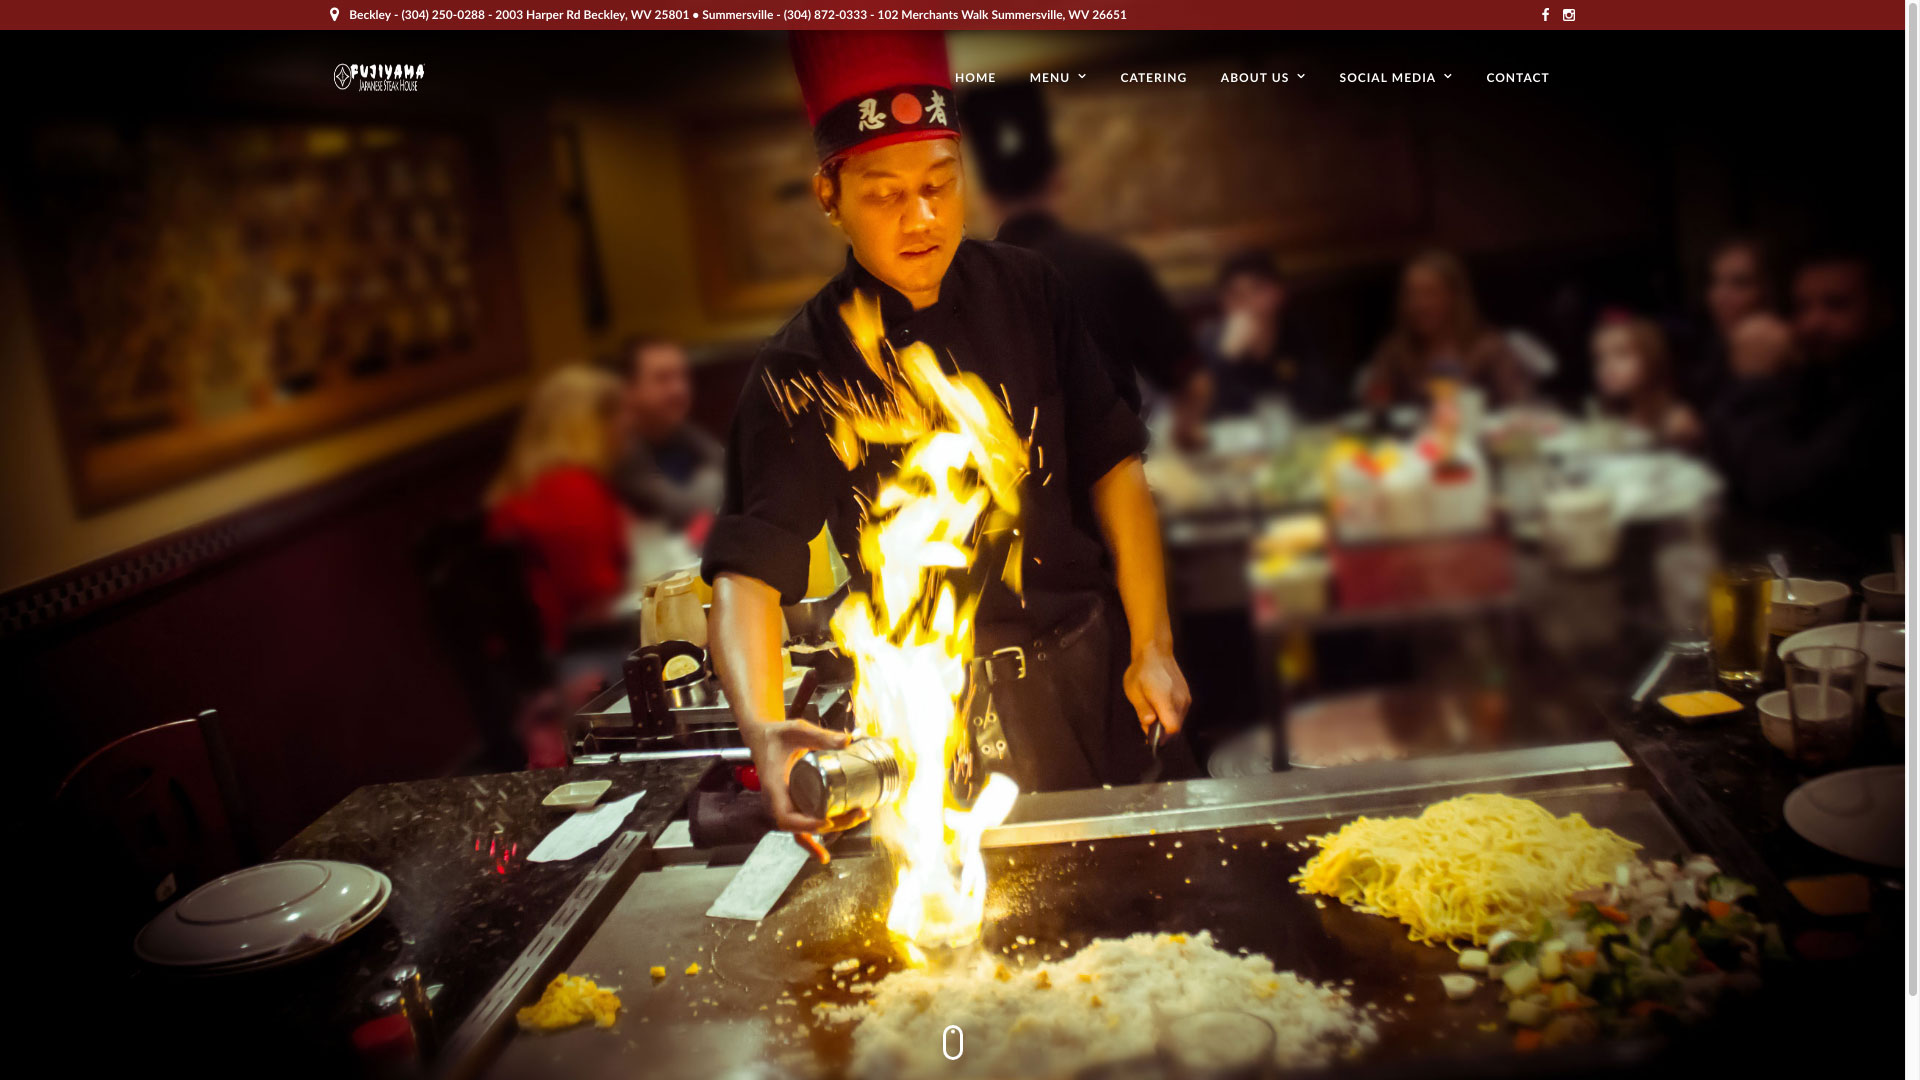 Fujiyama Japanese Steak House Home Page WV Web Design by Cucumber & Company Best Websites in WV Beckley Bluefield Princeton Huntington Charleston